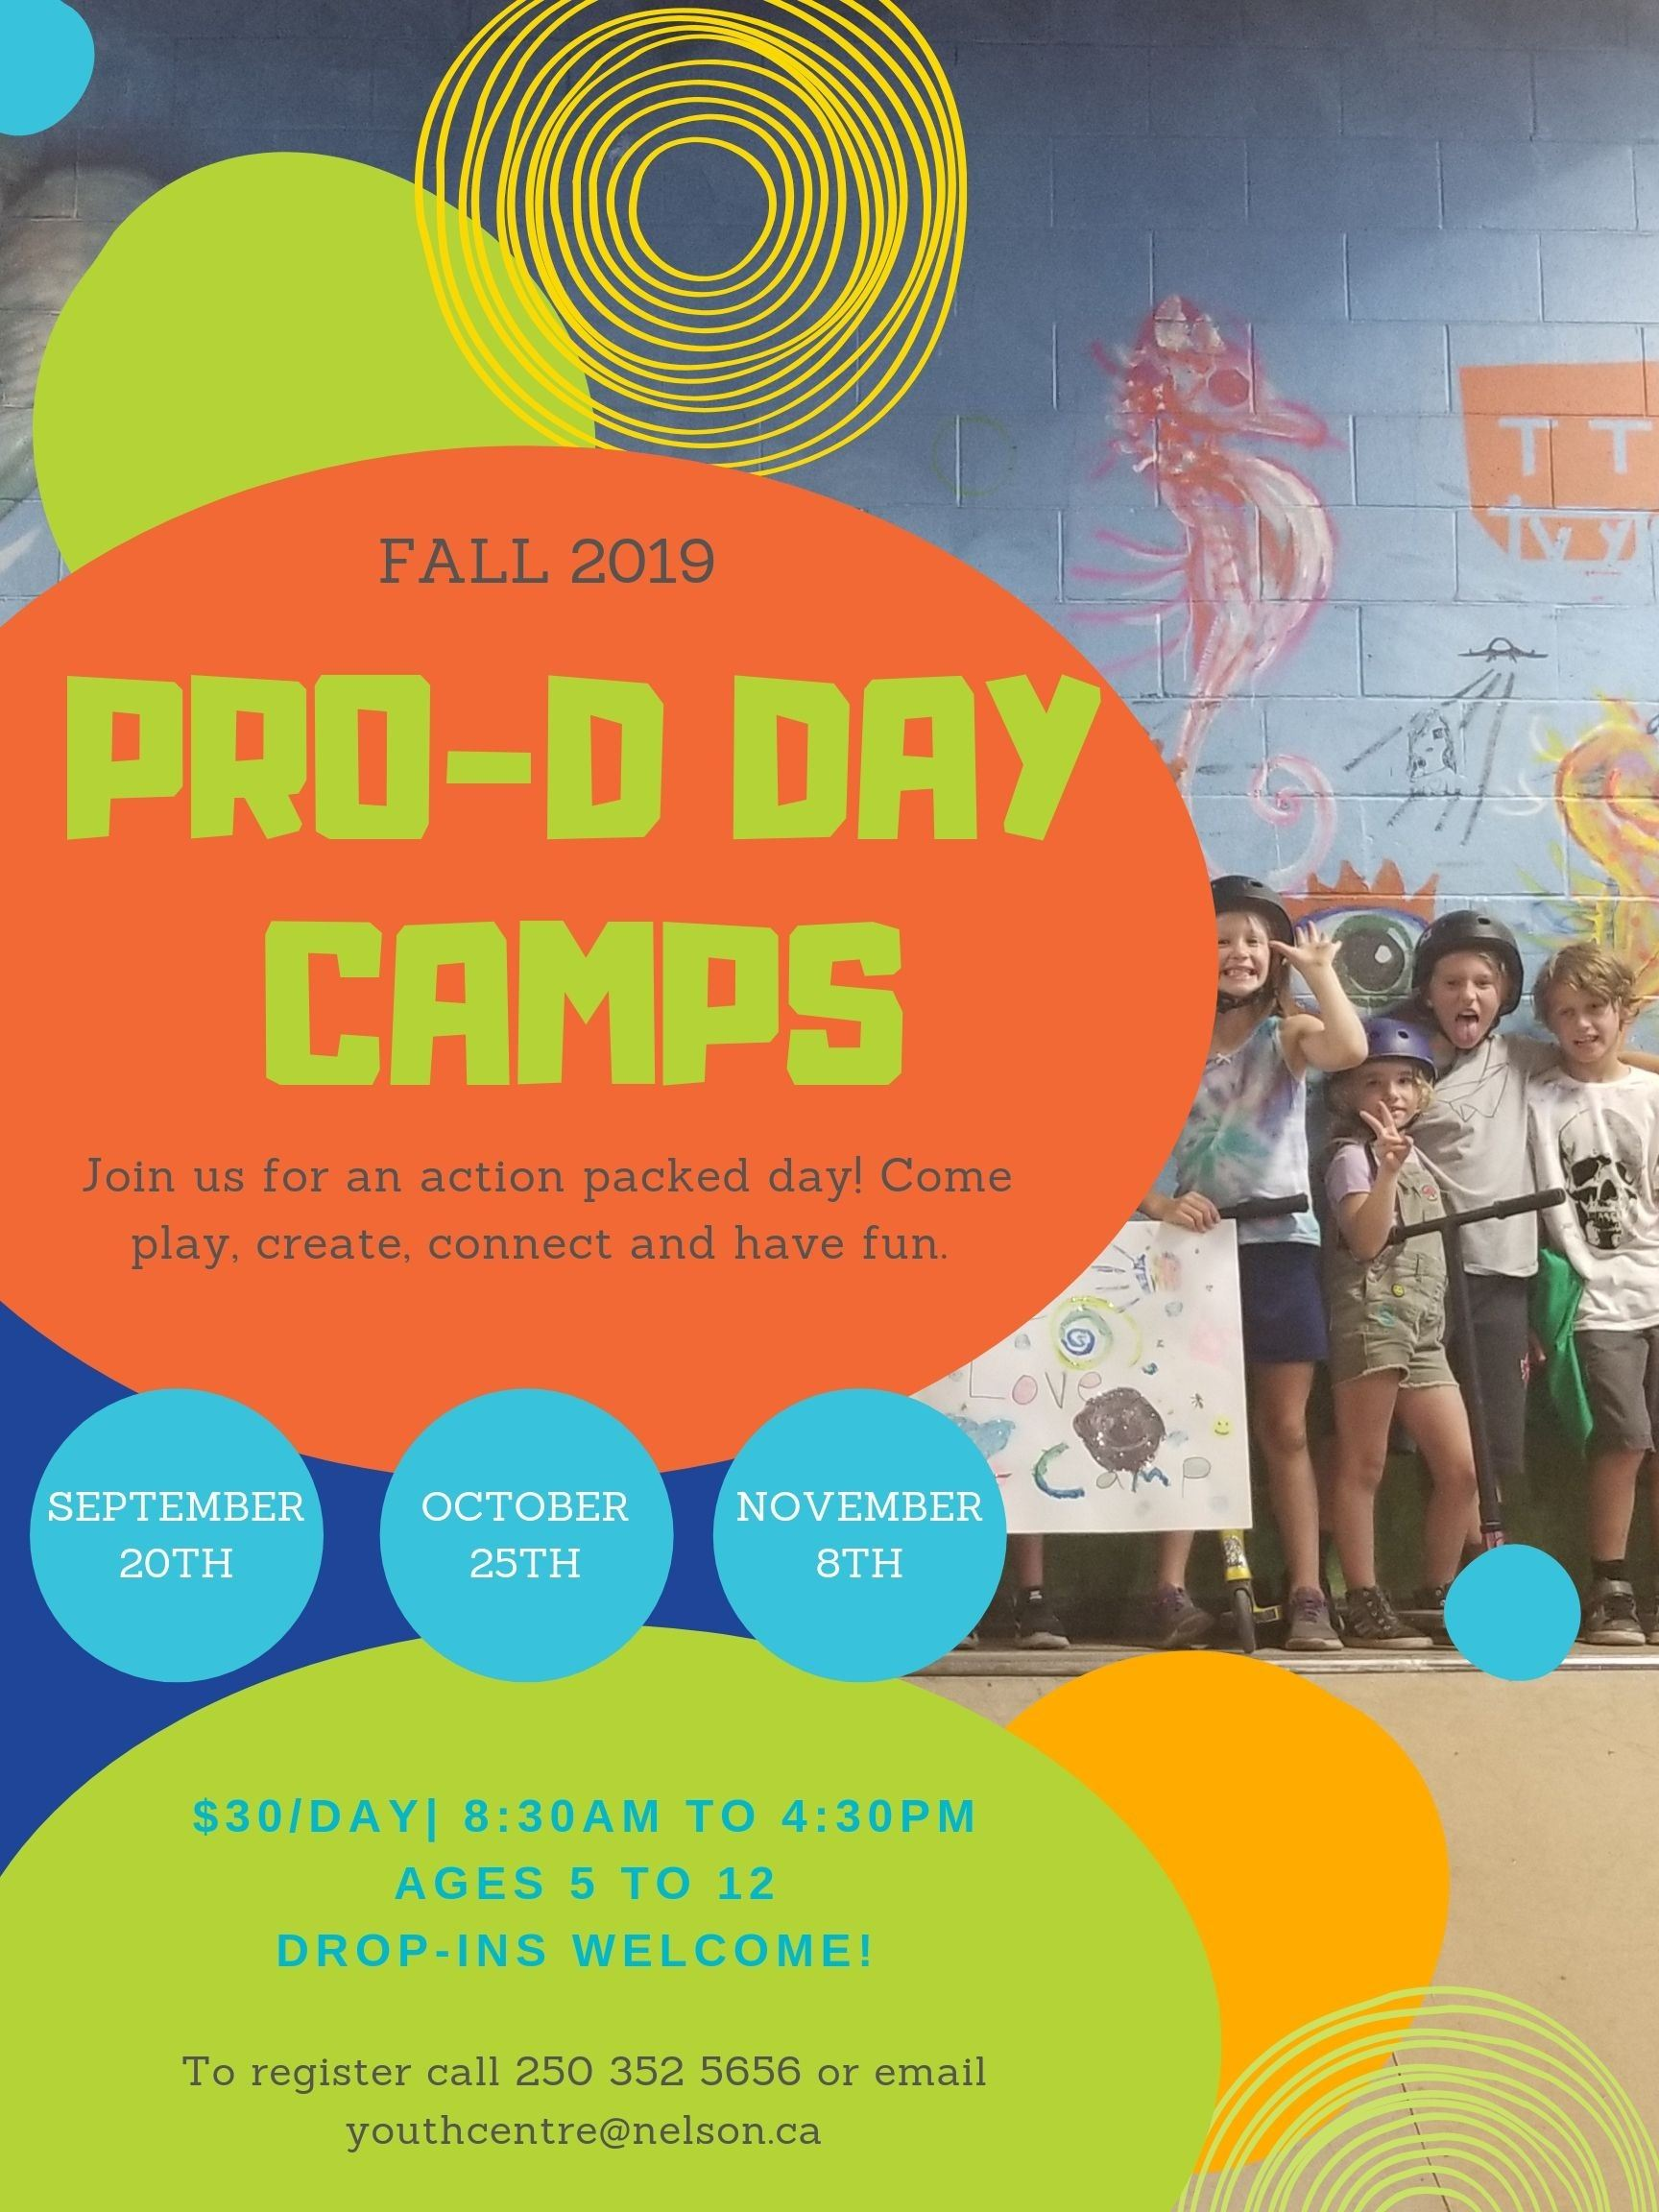 Pro-d Day camps Fall